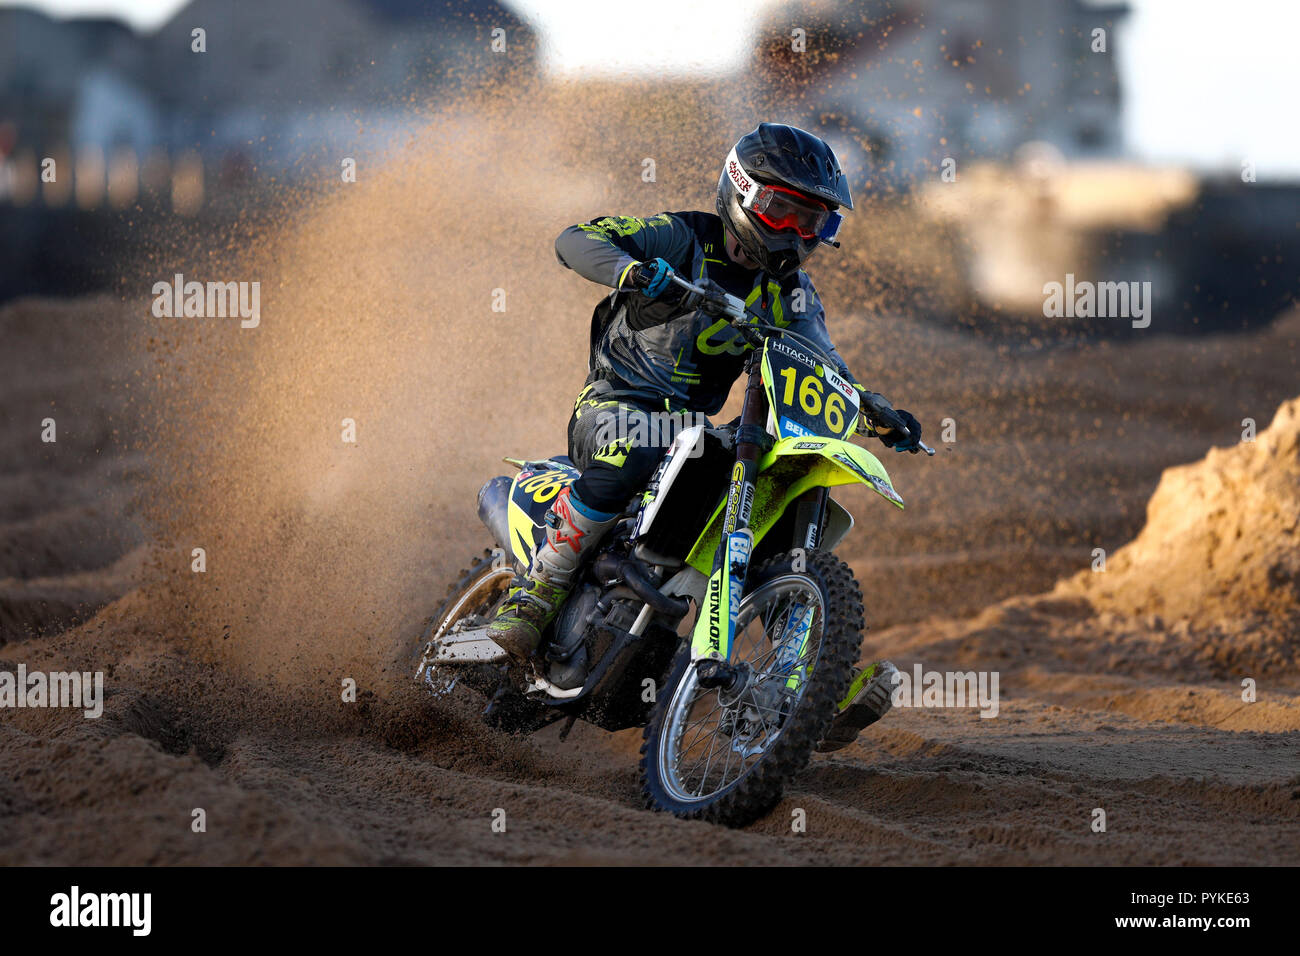 Portrush, Northern Ireland. Sunday 28 October, 2018  Action from the 2018 Portrush Beach Races. Credit: Graham  Service/Alamy Live News - Stock Image